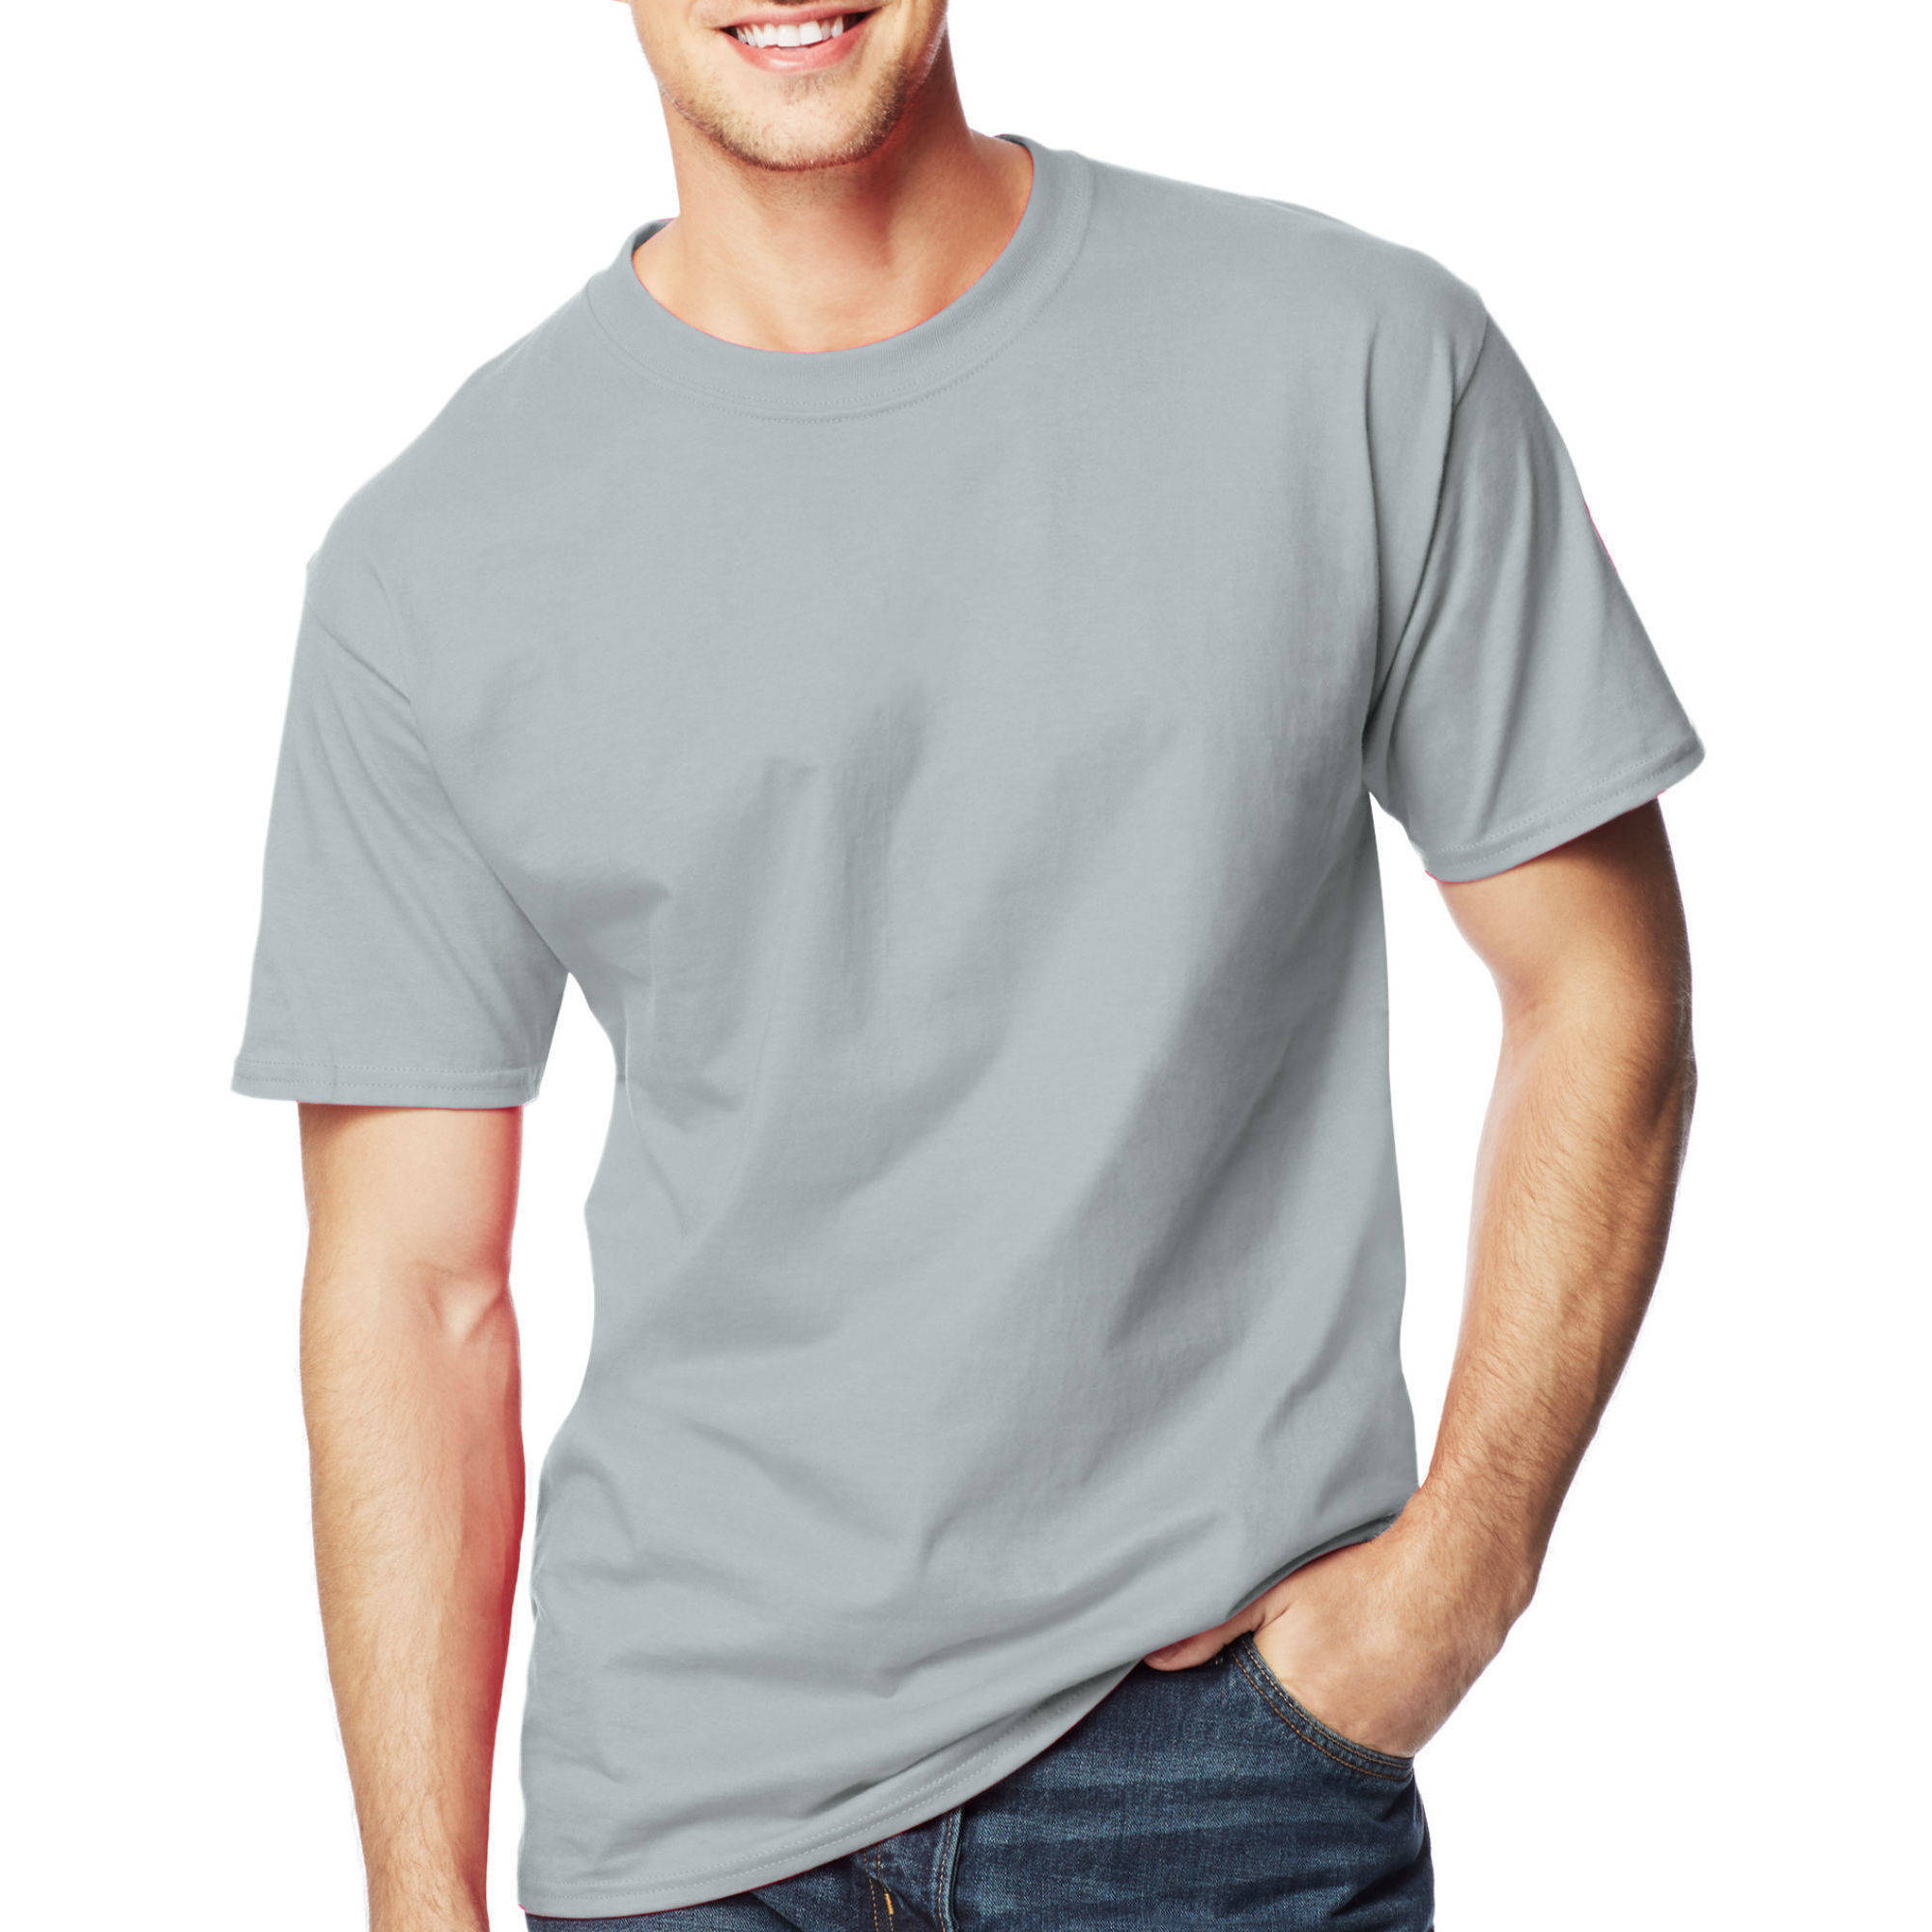 Hanes Big and Tall Men's Beefy-T Short Sleeve Tee